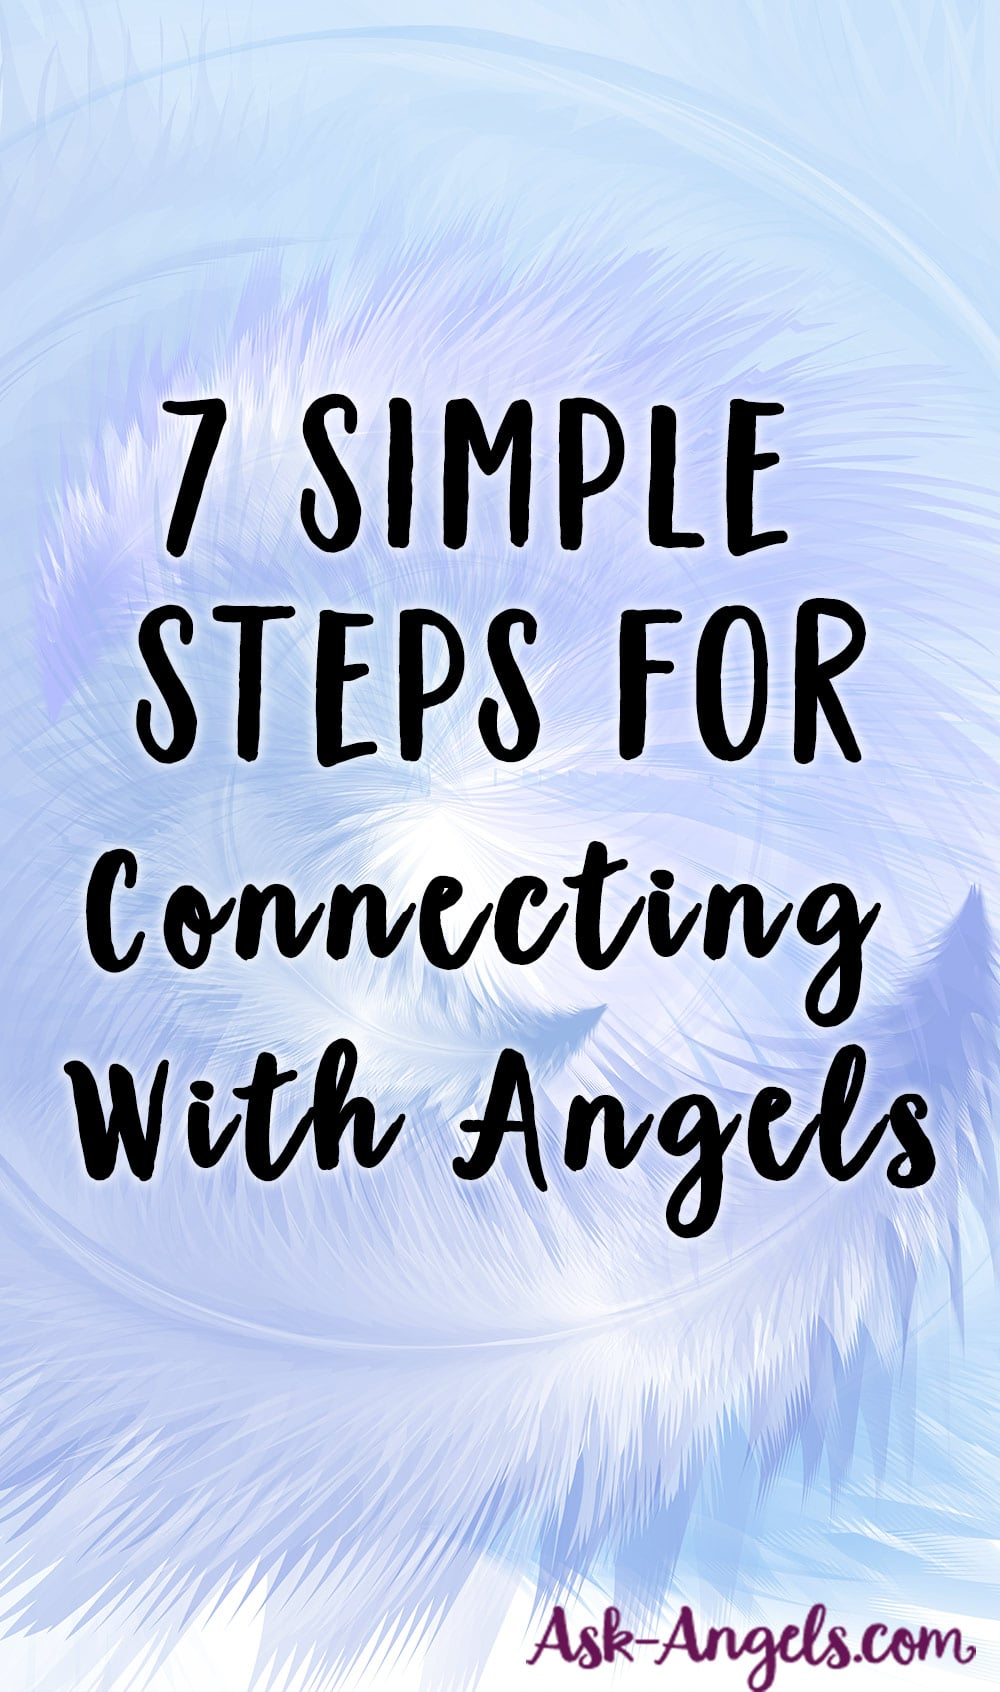 Connecting With Angels